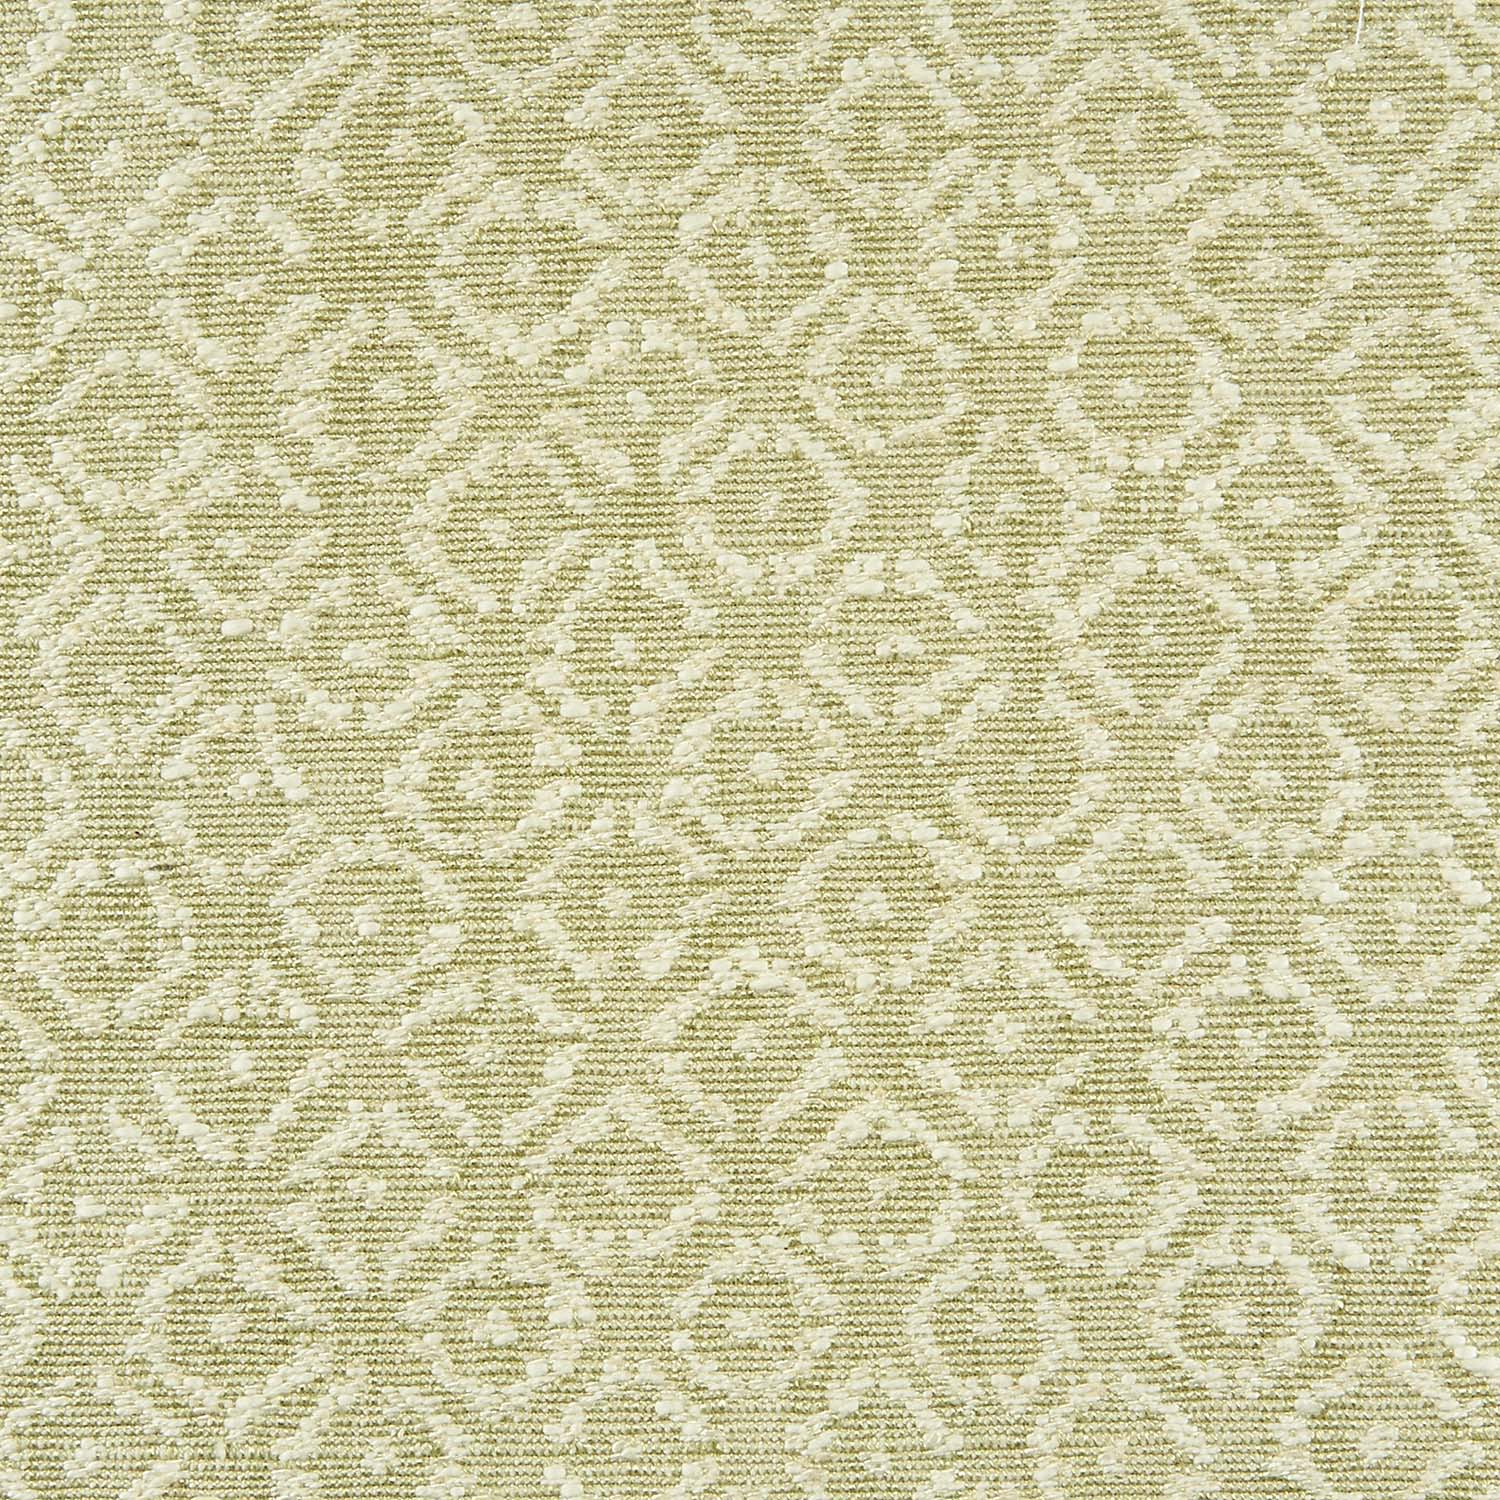 <p><strong>ALBEMARELE</strong>green 1600-03<a href=/the-langham-collection/albemarle-green-1600-03>More →</a></p>